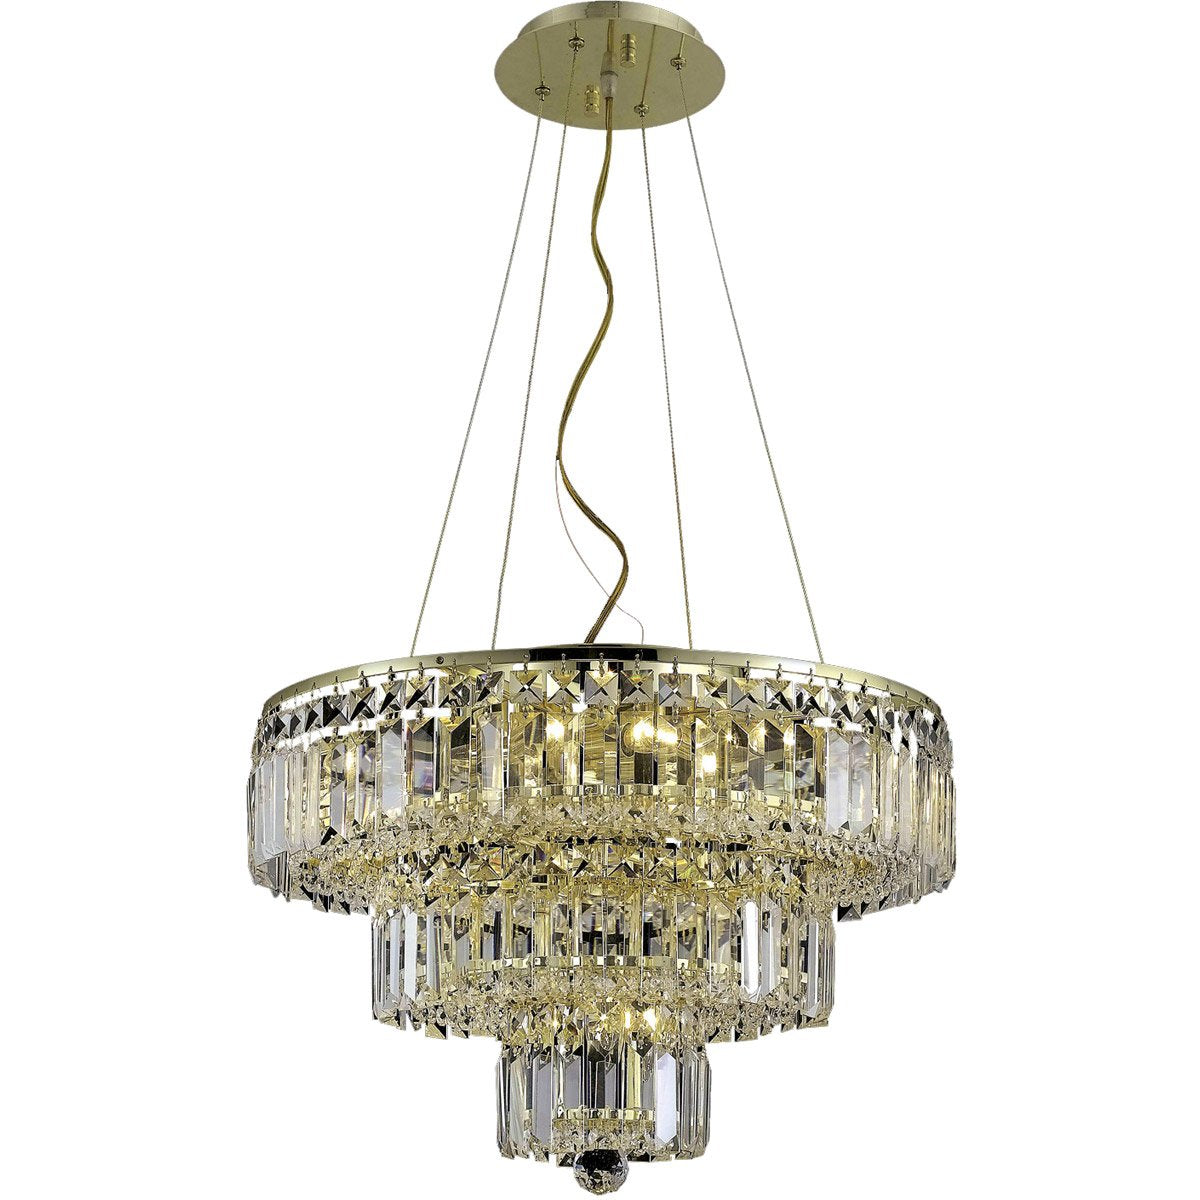 Maxime 20 Crystal Chandelier With 9 Lights - Gold Finish And Clear / Spectra Swarovski Crystal Chandelier